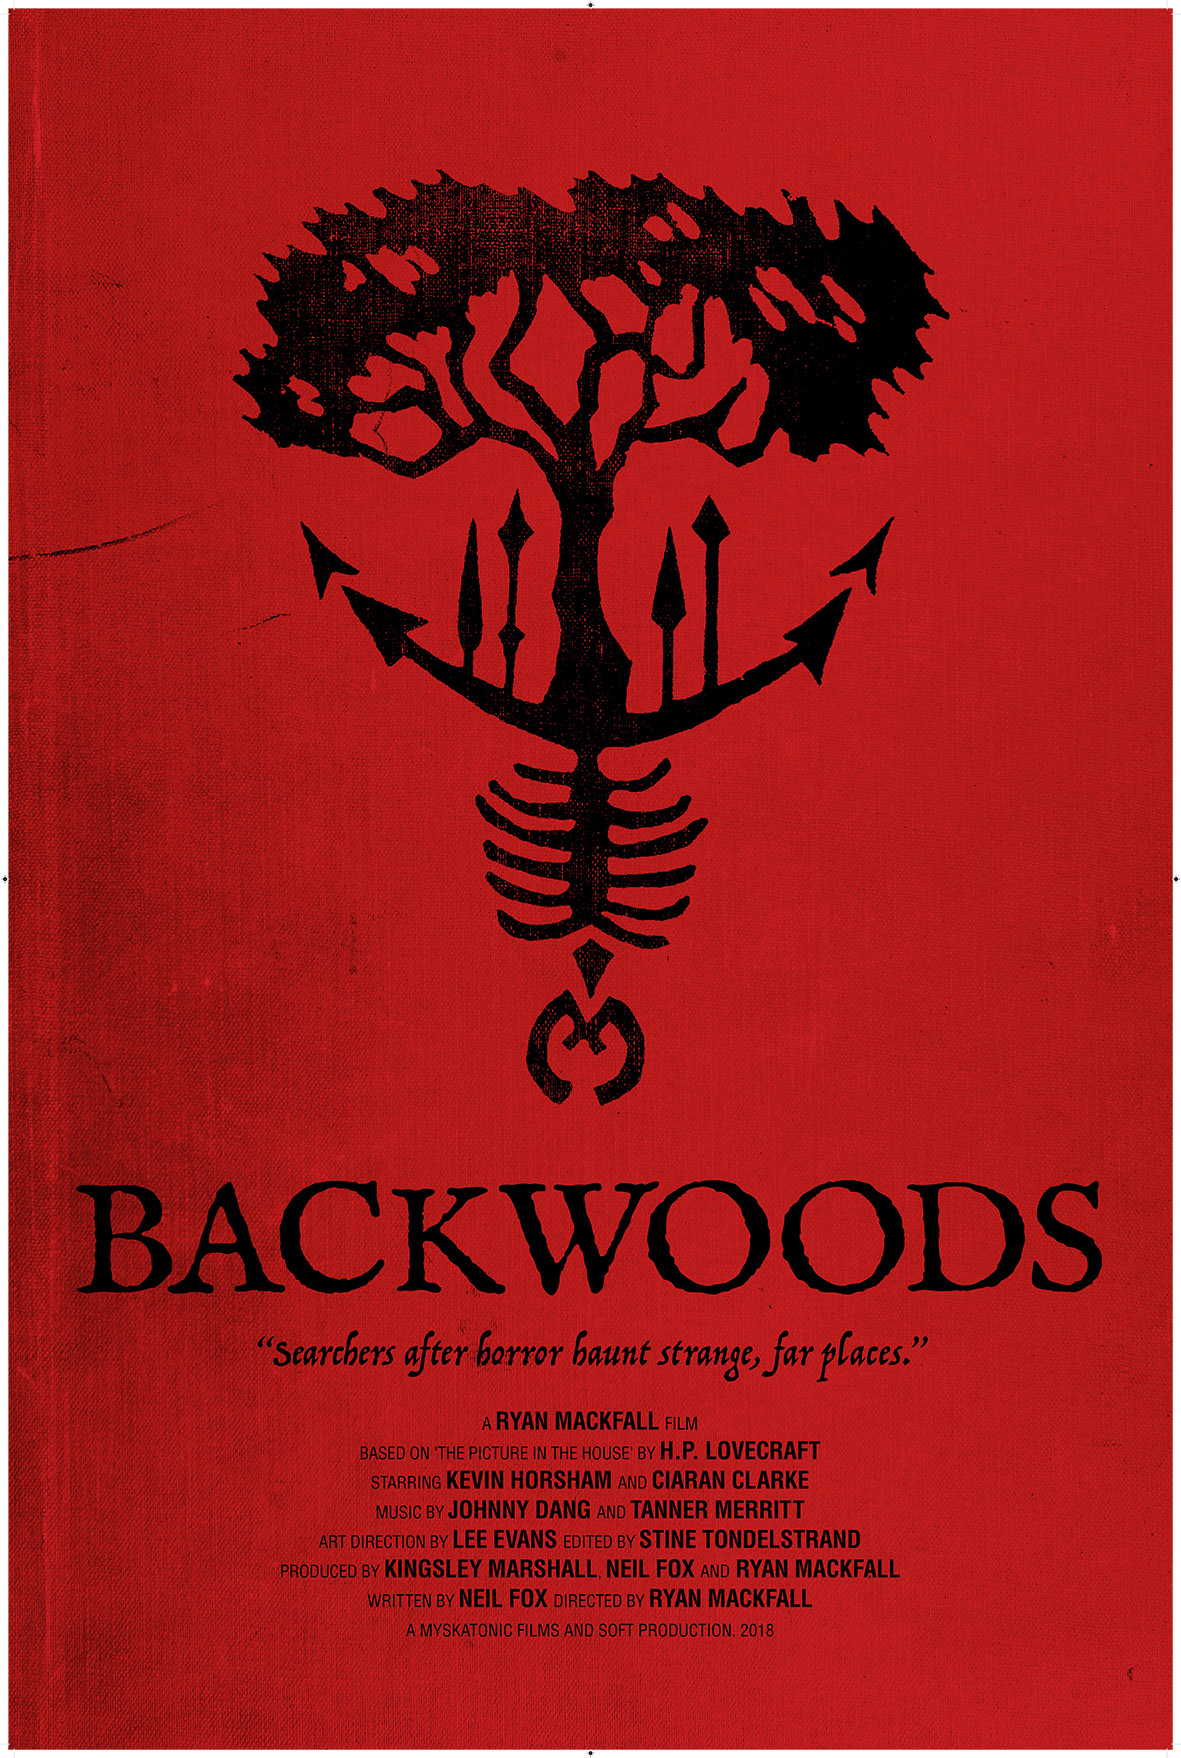 Artwork for  Backwoods  designed by Angela Annesley. (c) Ravenstongue Prints 2019.